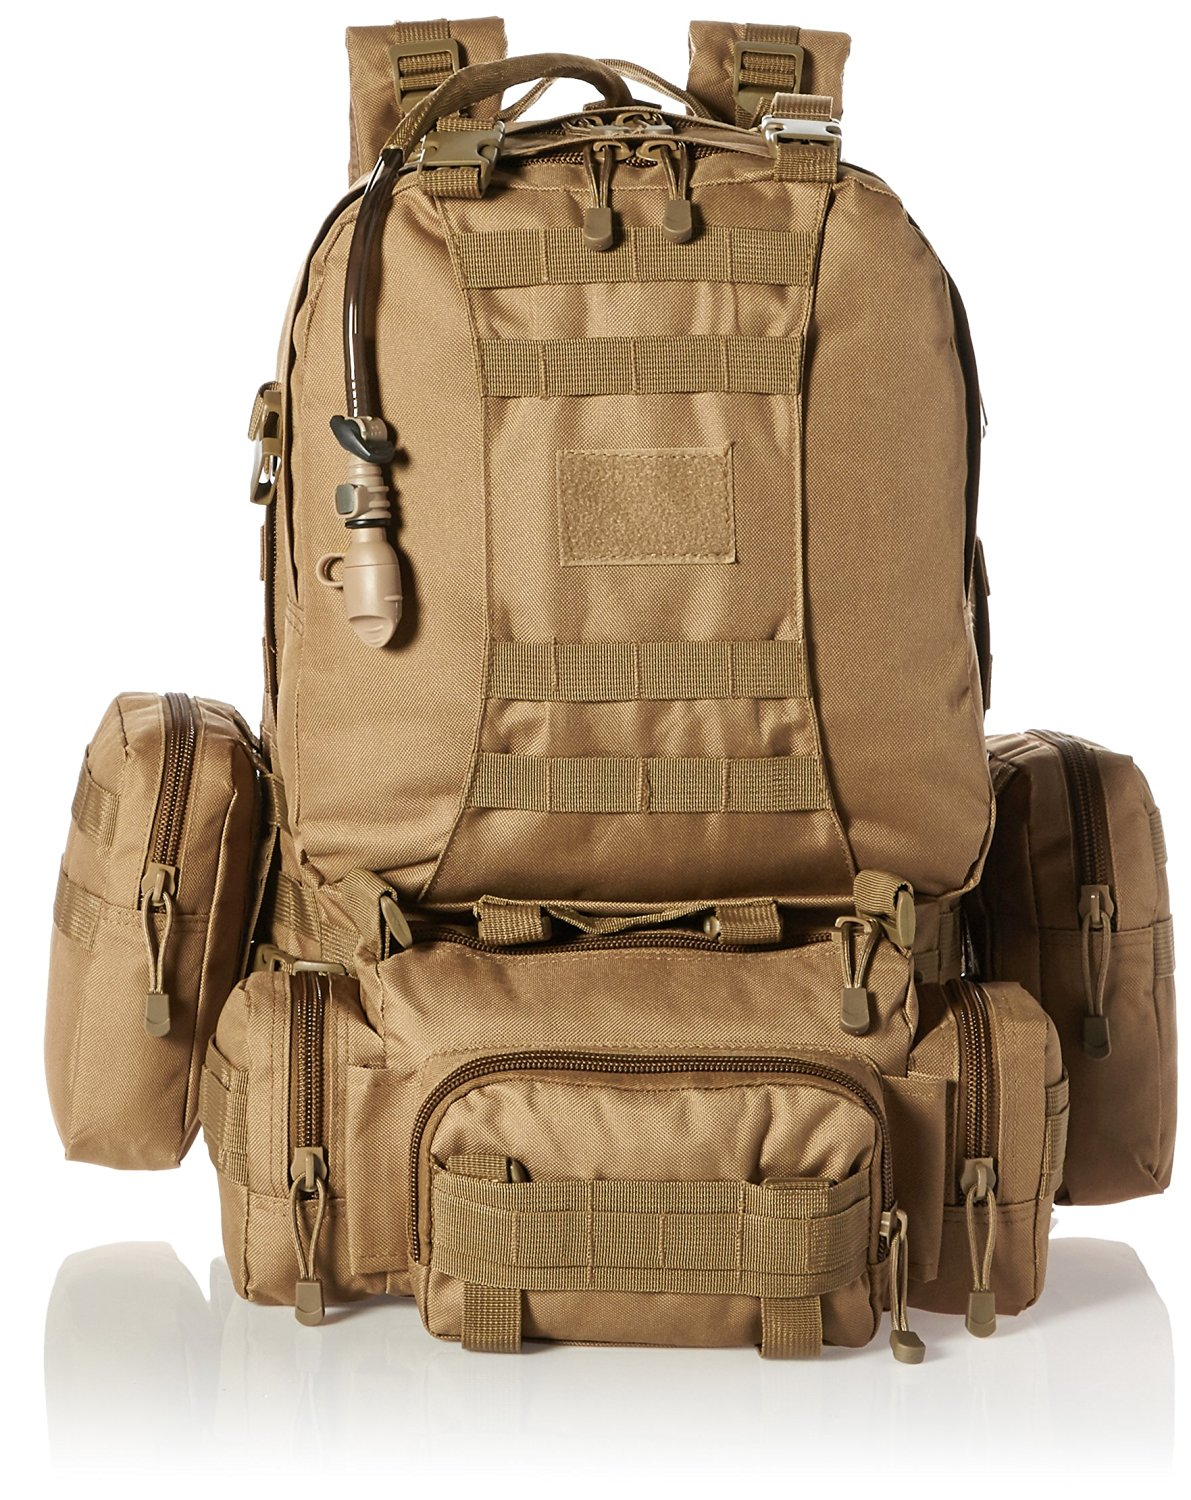 Monkey Paks Tactical Backpack Bundle with 2.5L Hydration Water Bladder and 3 Molle Bags